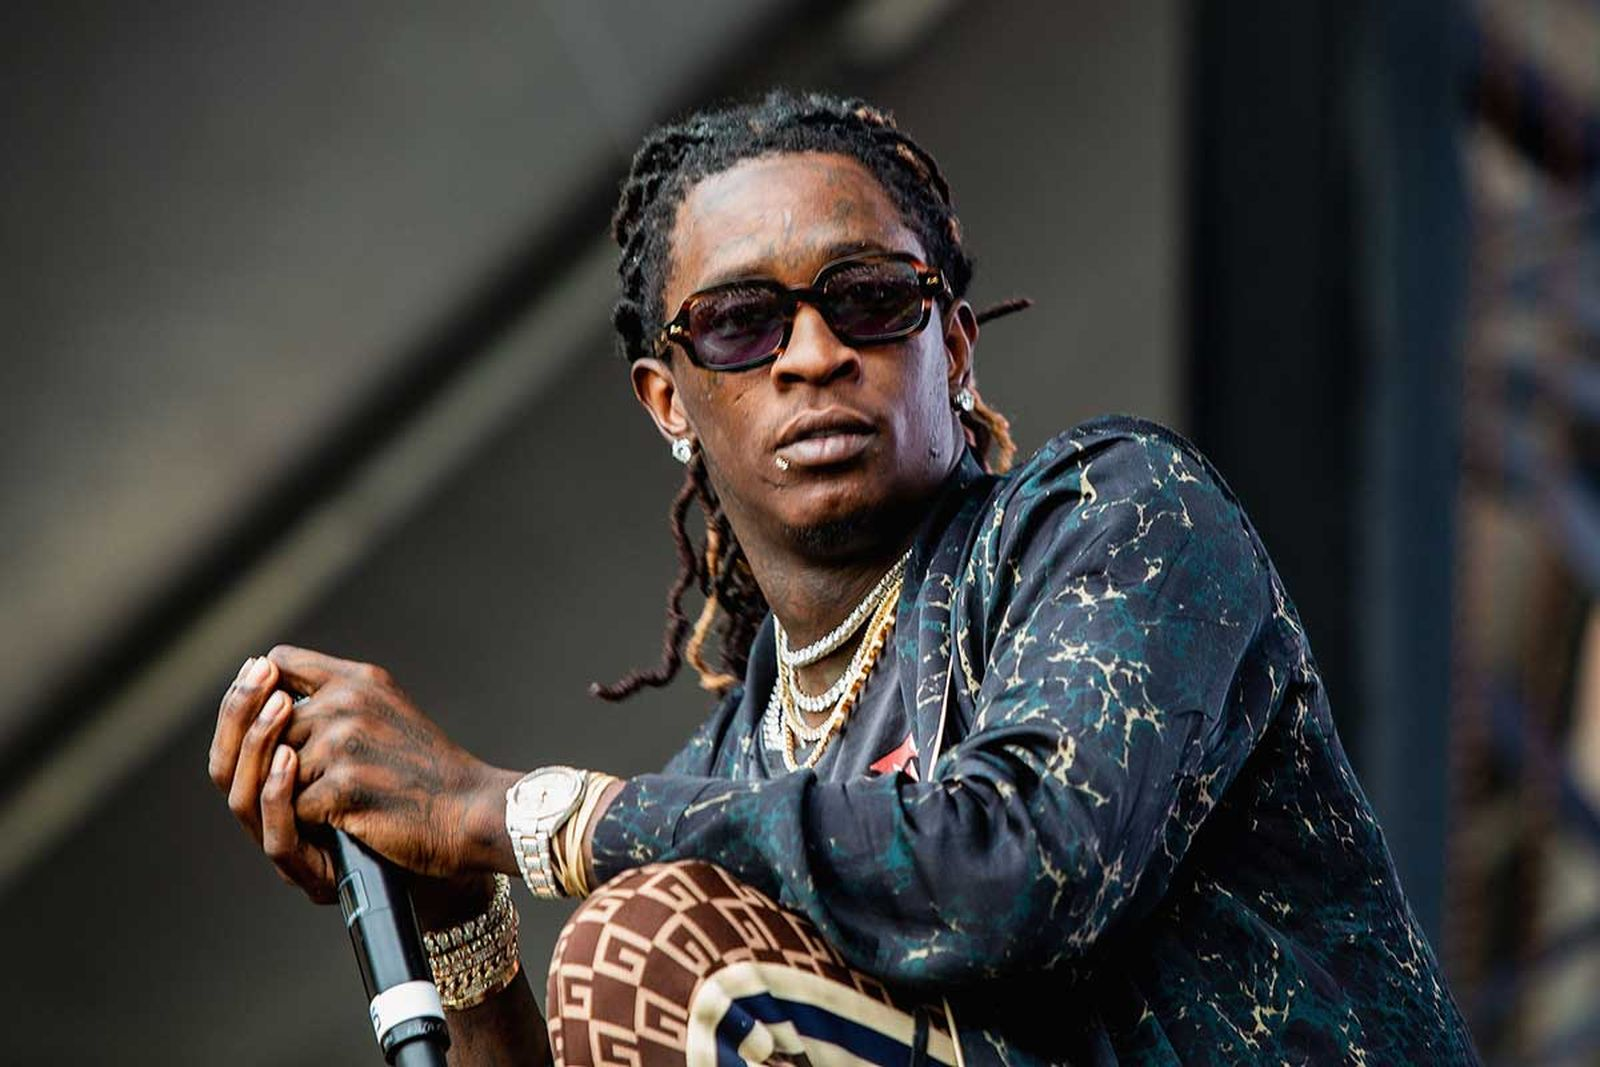 Young Thug performs at Bumbershoot at Seattle Center